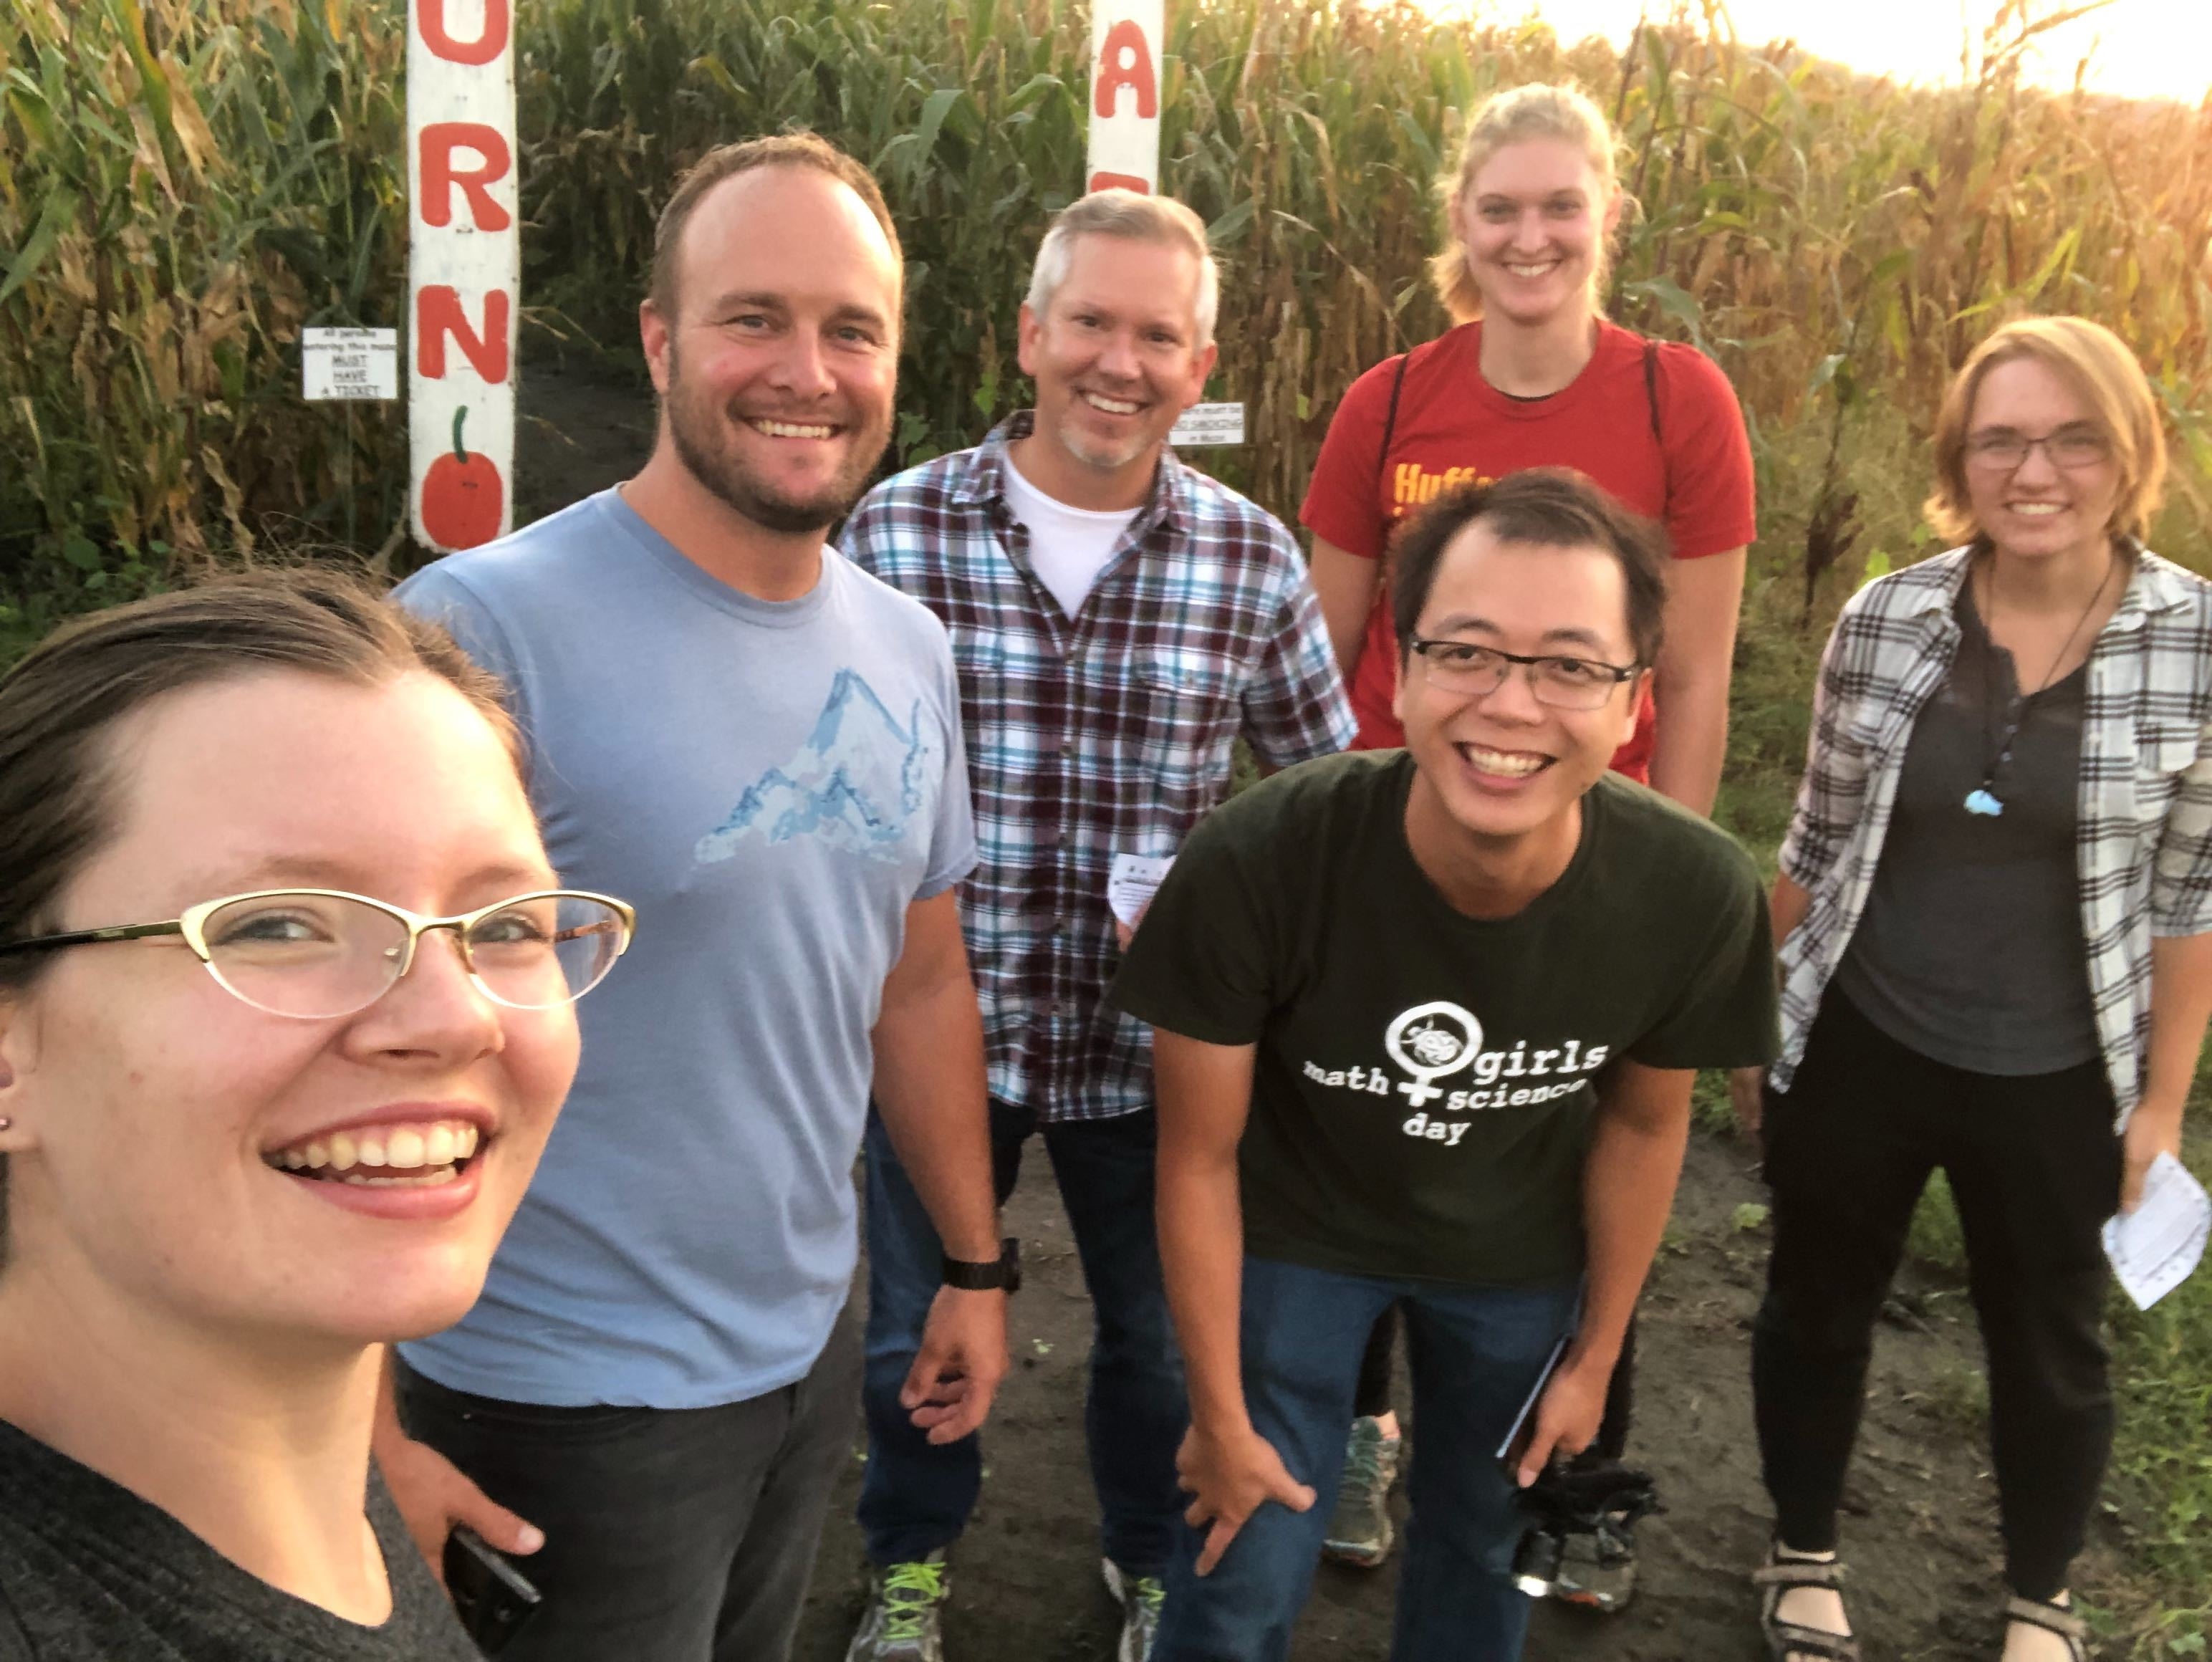 Hufford Lab taking on the Pumpkinville Corn Maze